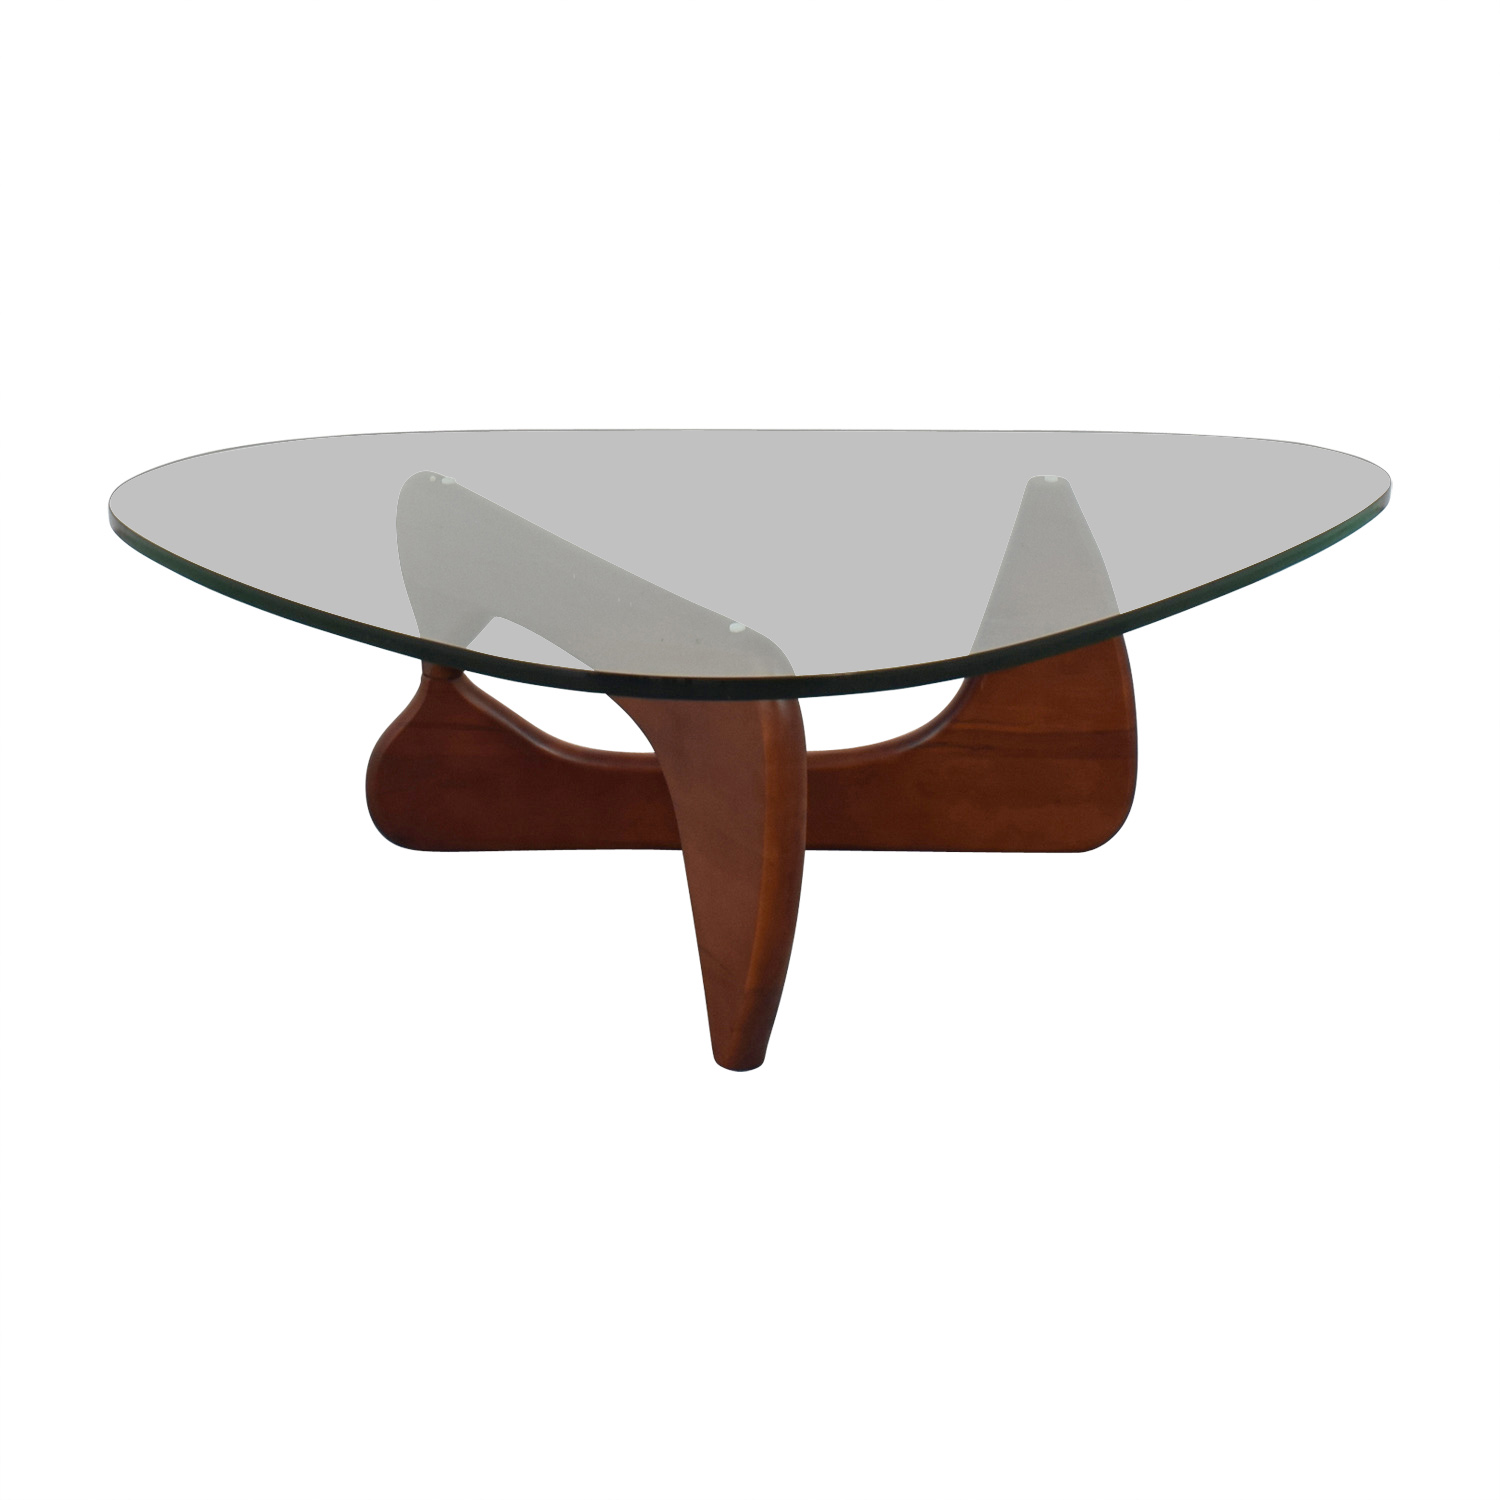 buy Modway Modway Isamu Noguchi-inspired Triangle Glass Coffee Table with Cherry Wood online